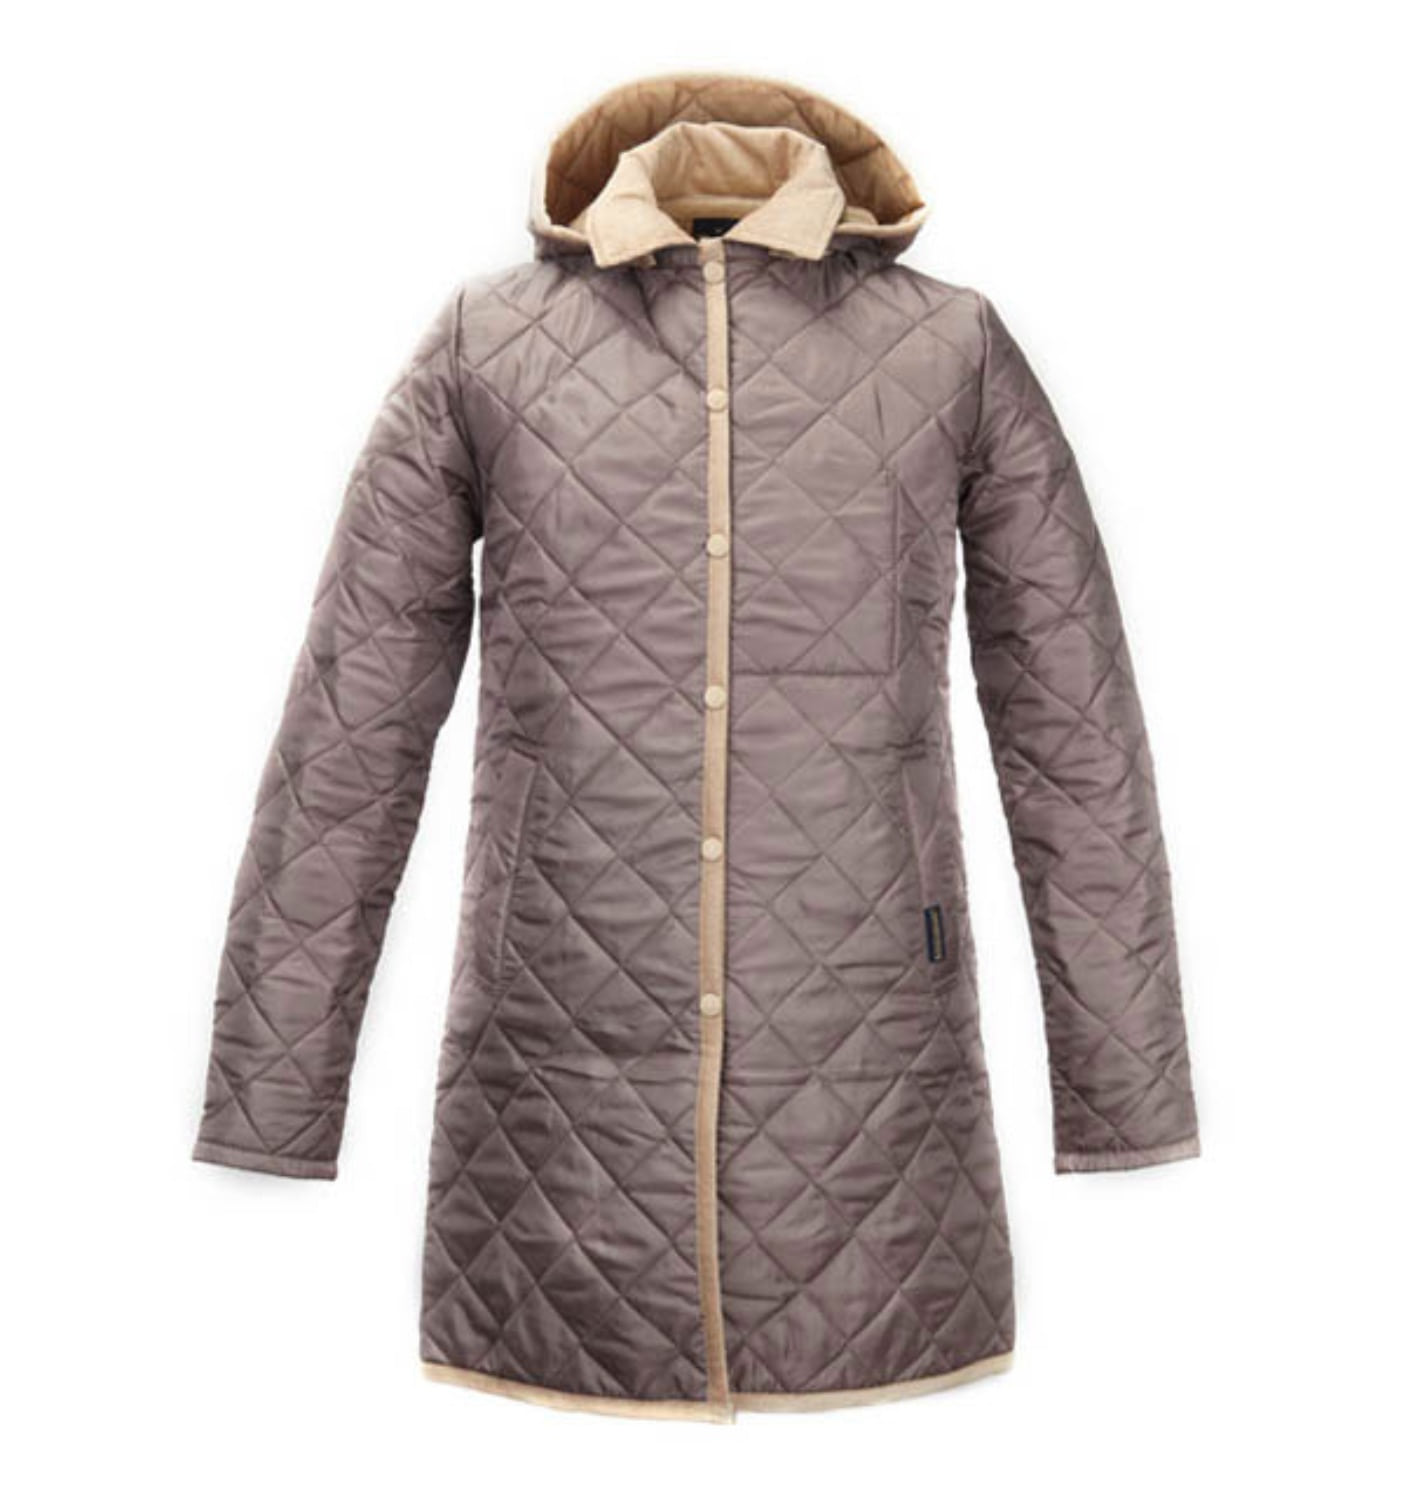 HALSTEAD LADIES NEW TAUPE